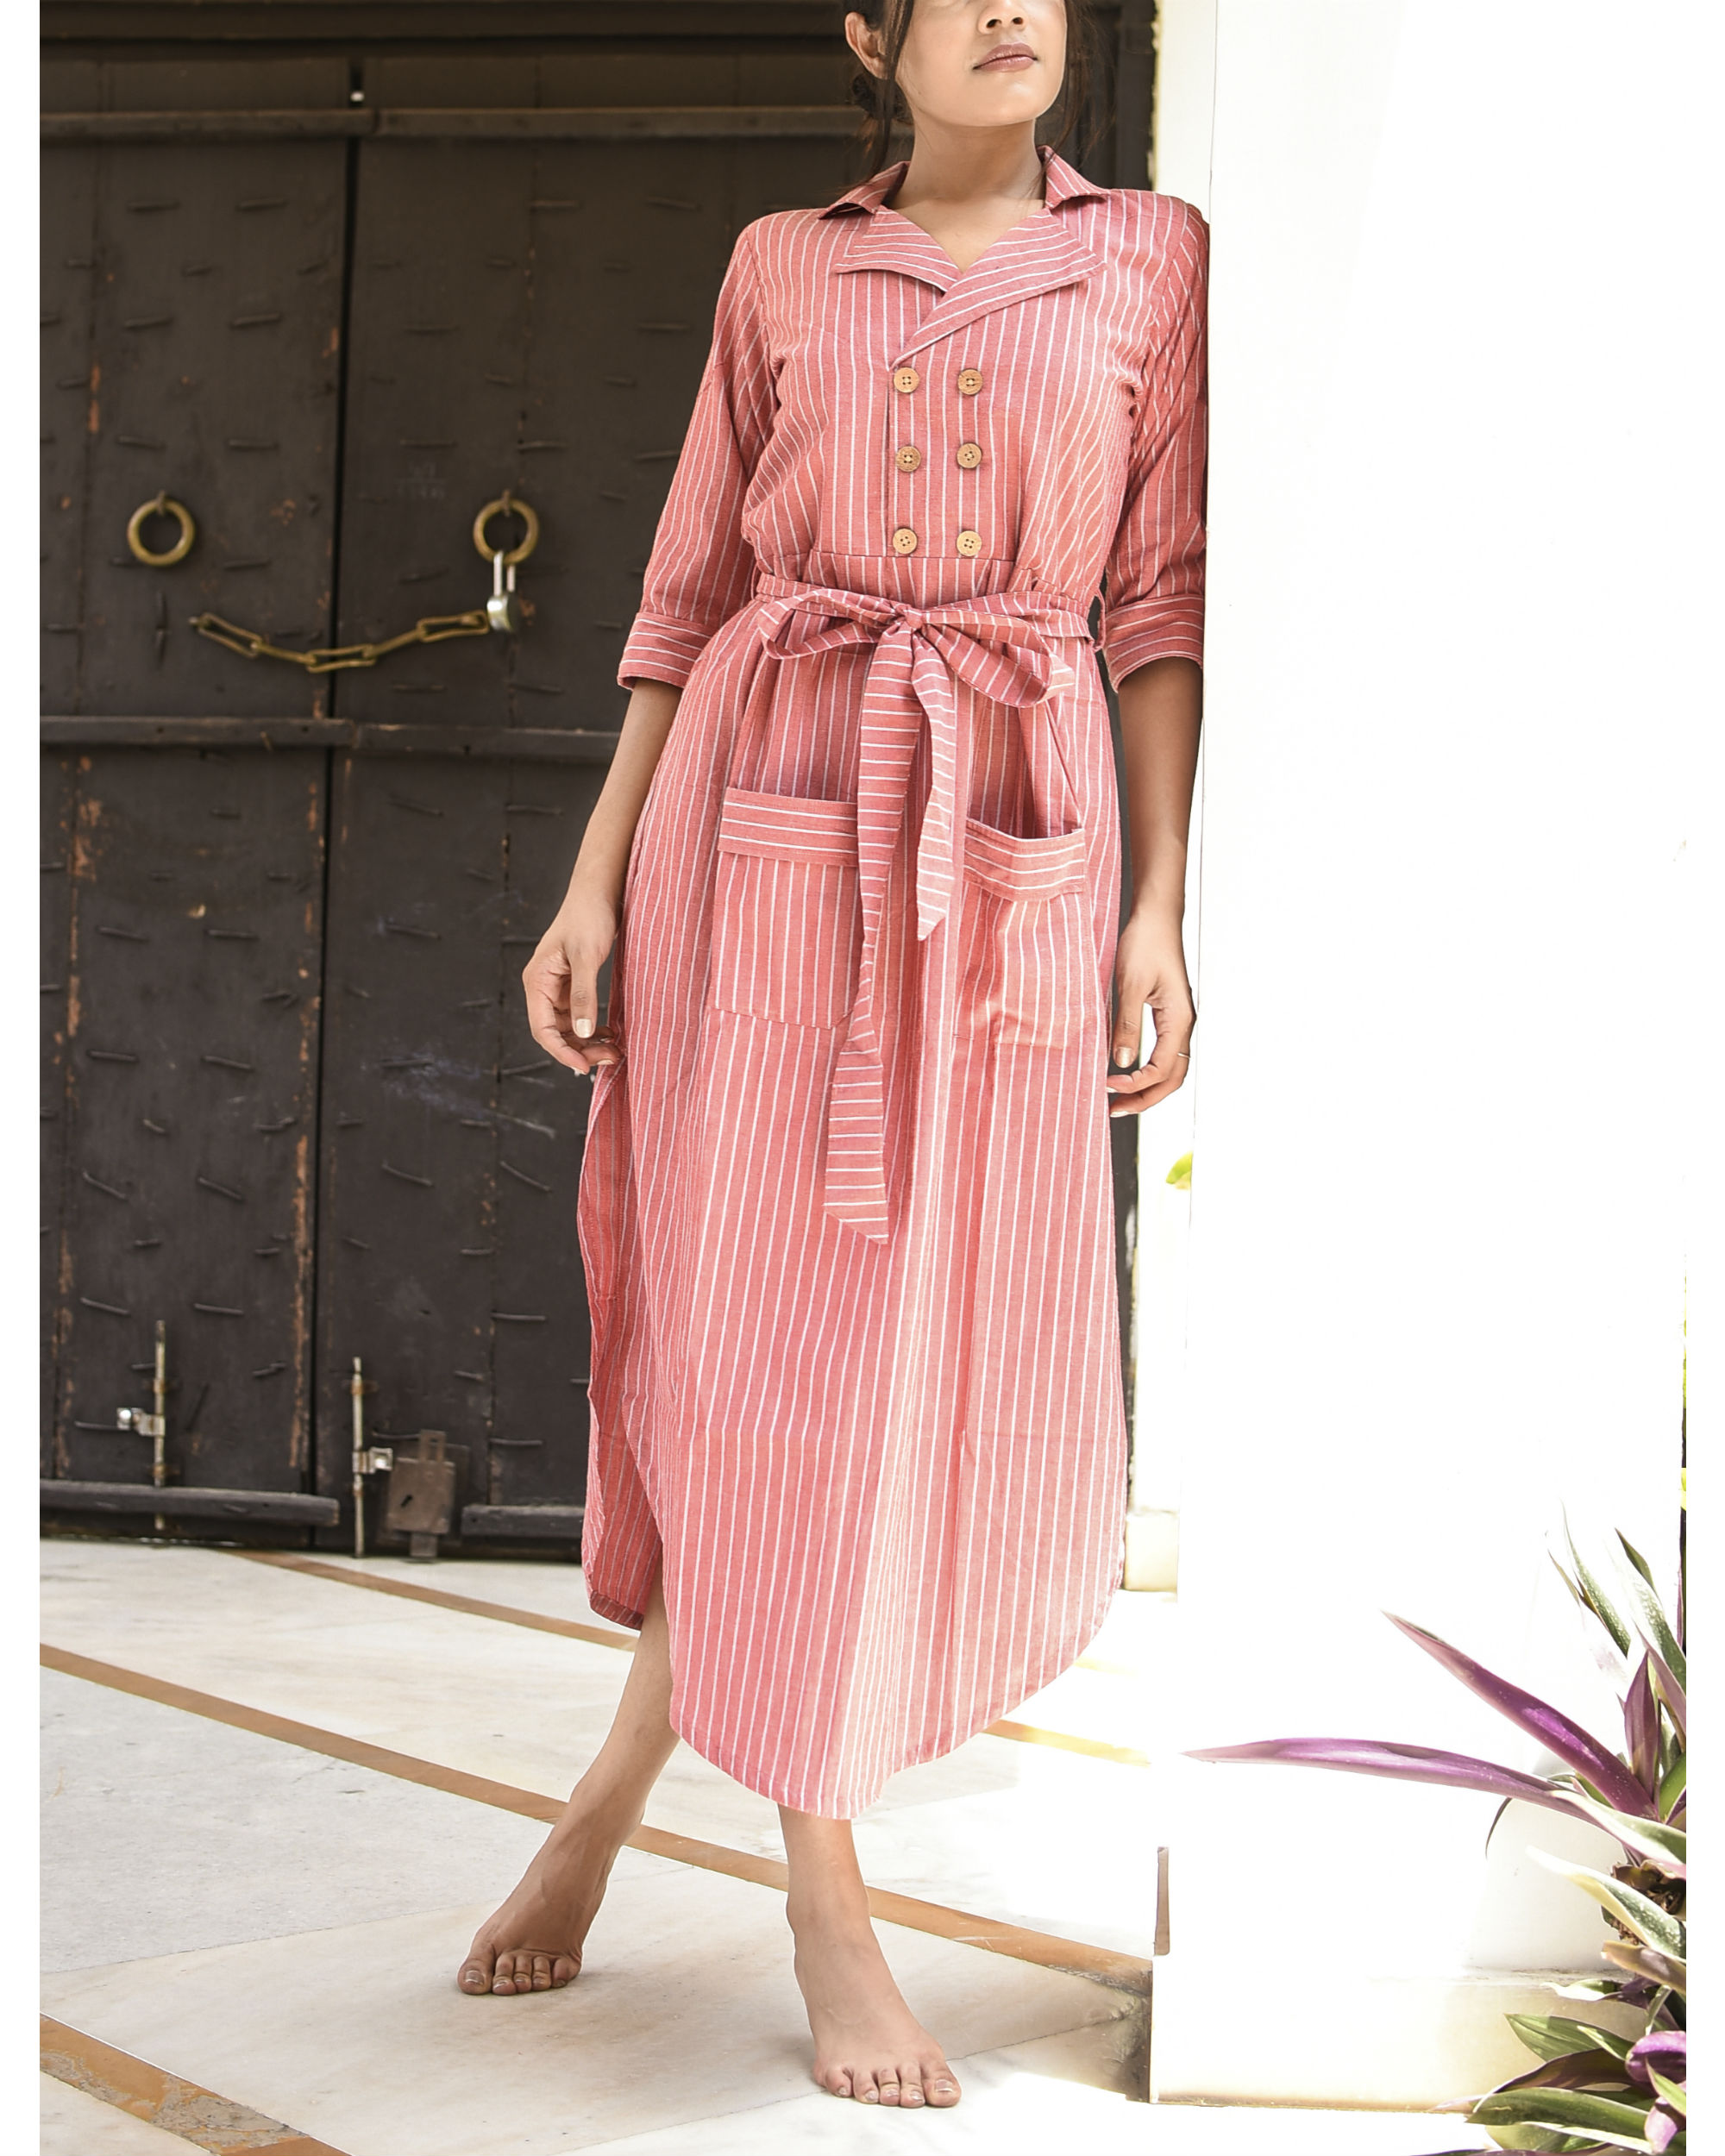 Pink soothing dress